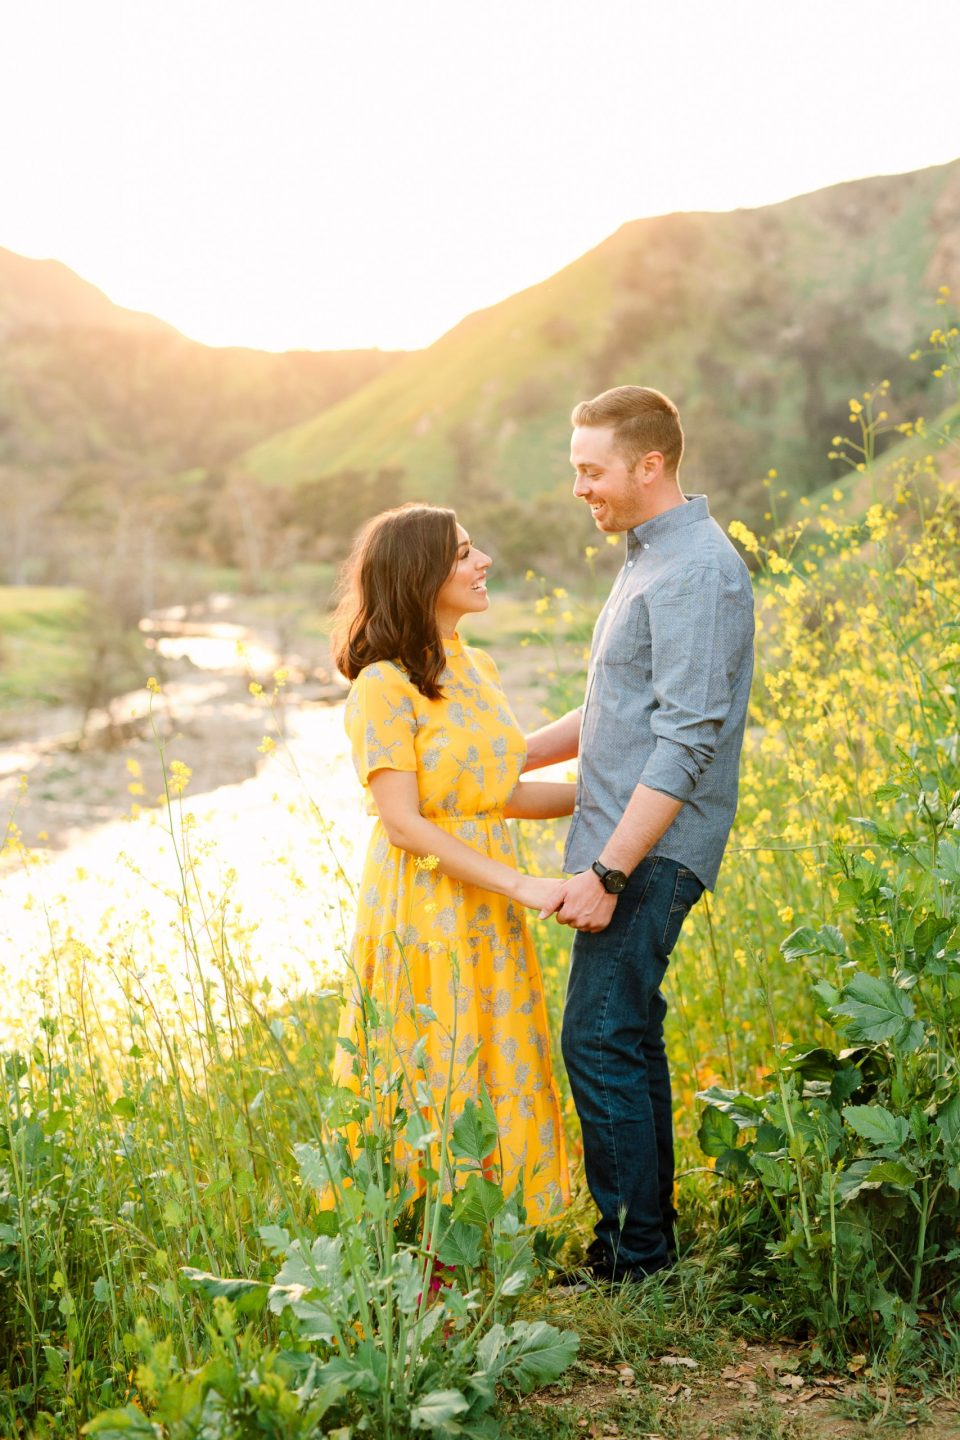 Couple in Malibu Creek Park with blooming mustard seed by Mary Costa Photography